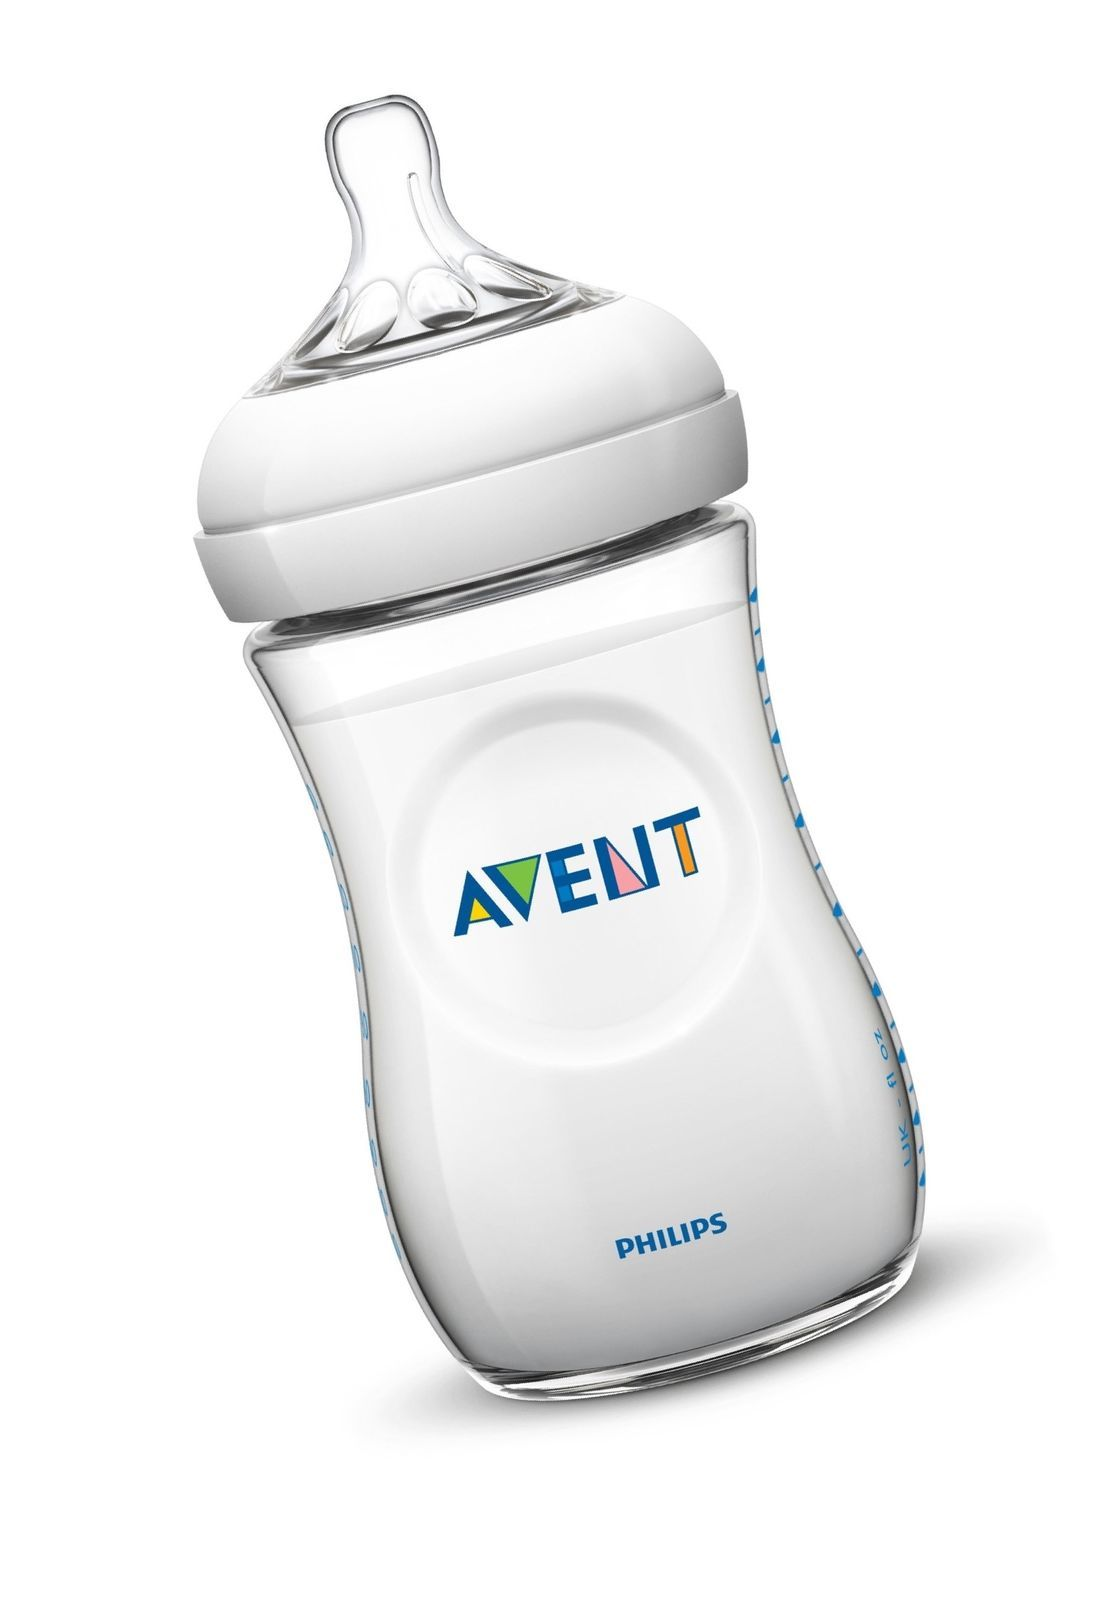 Philips Avent Infant Formula 19 Listings Gift Set Baby Newborn Natural Bpa Free Polypropylene Bottle 11 Ounce 3 Pack 2199 Advanced Search For